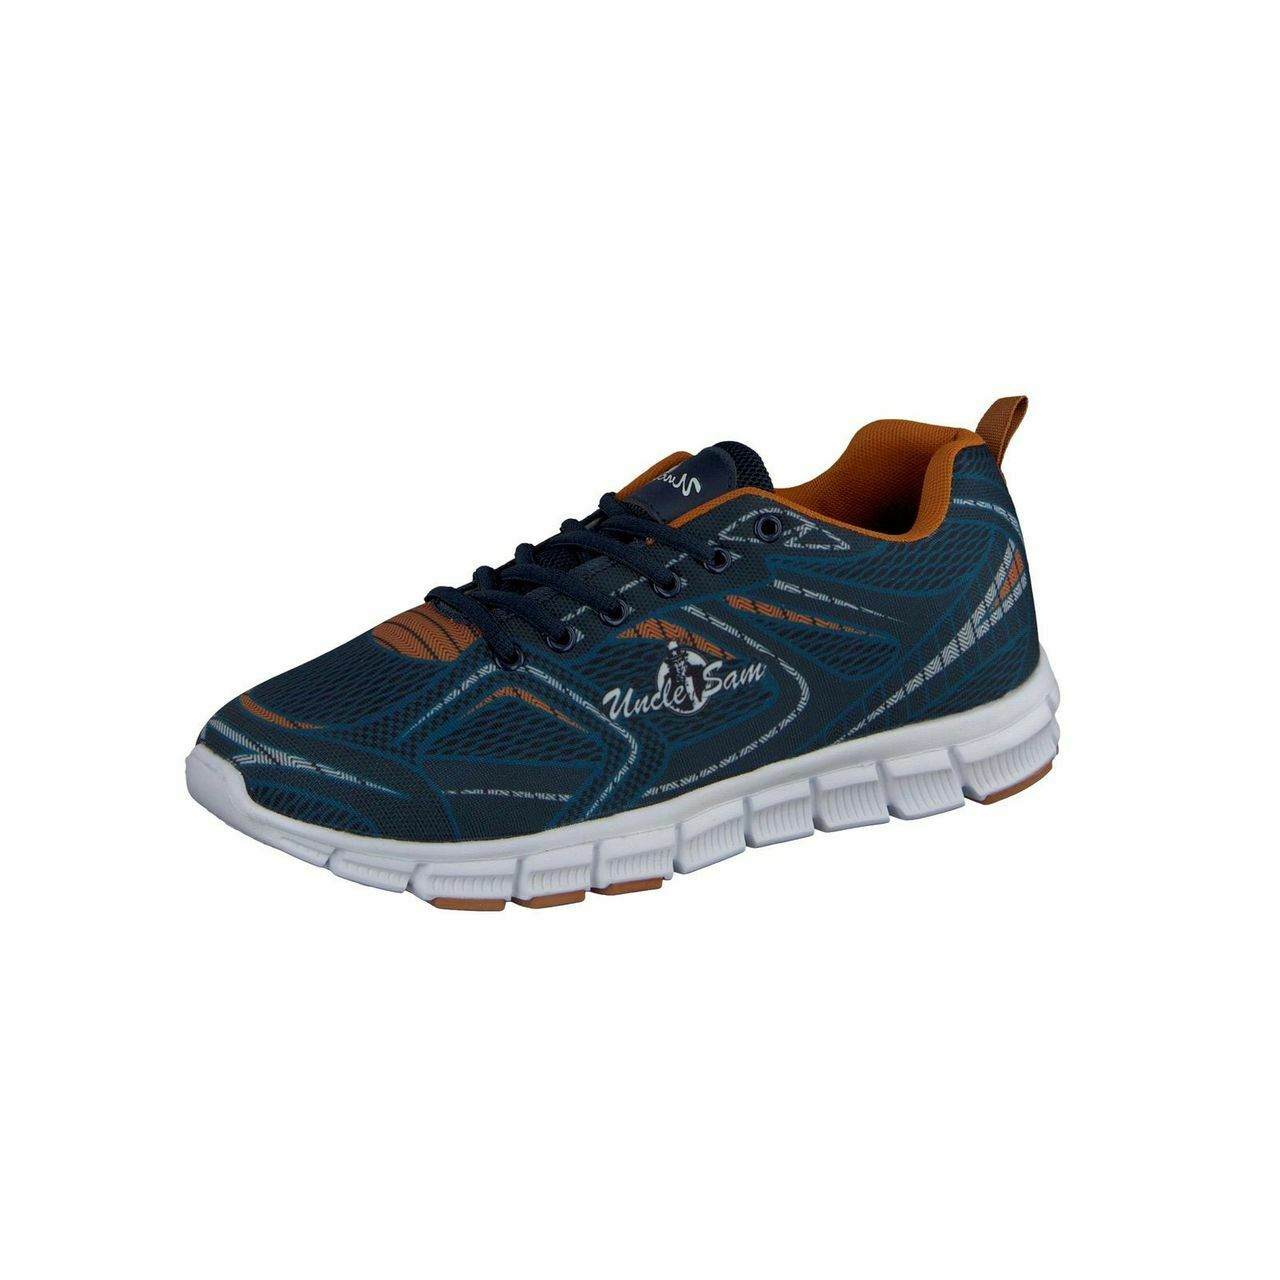 Uncle Sam Men's Sea ess Leichtlaufschuh Running shoes  Navy orange  big savings